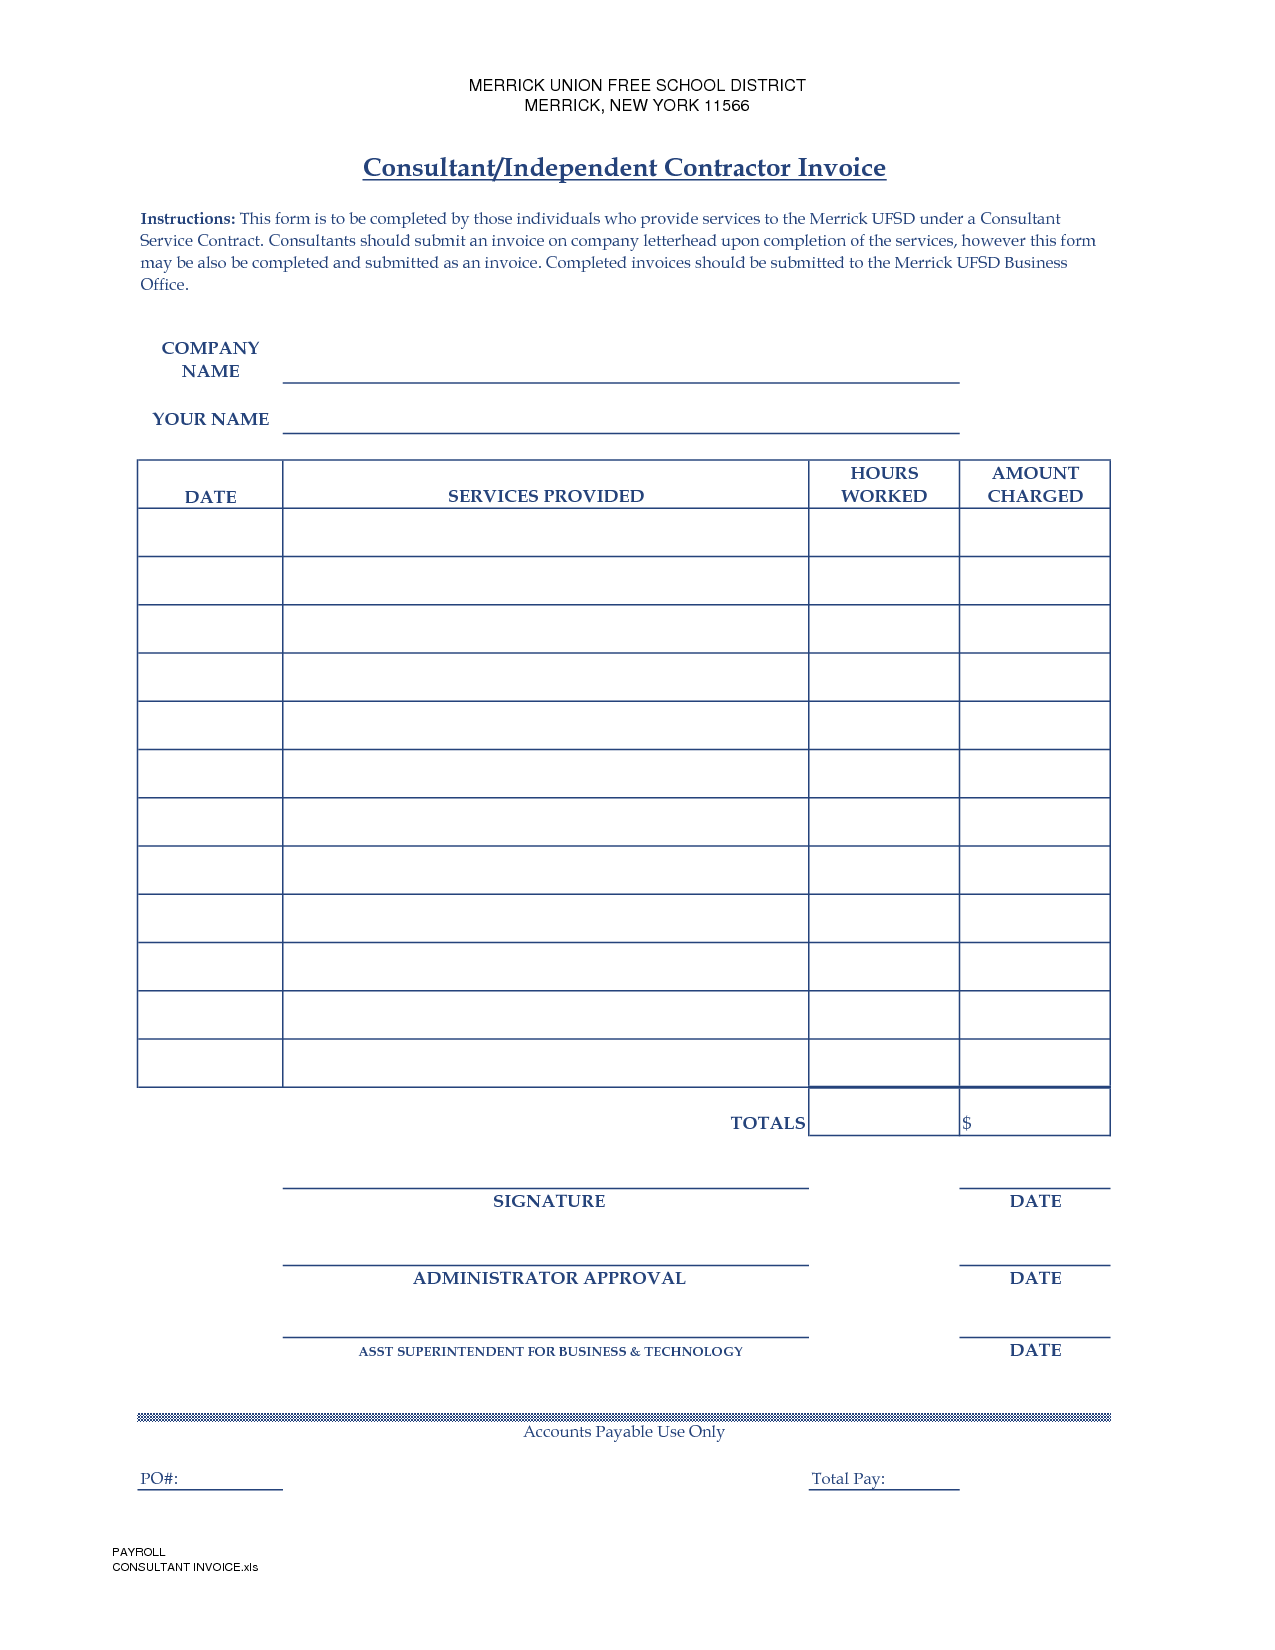 independent contractor invoice template free | invoice example, Invoice templates